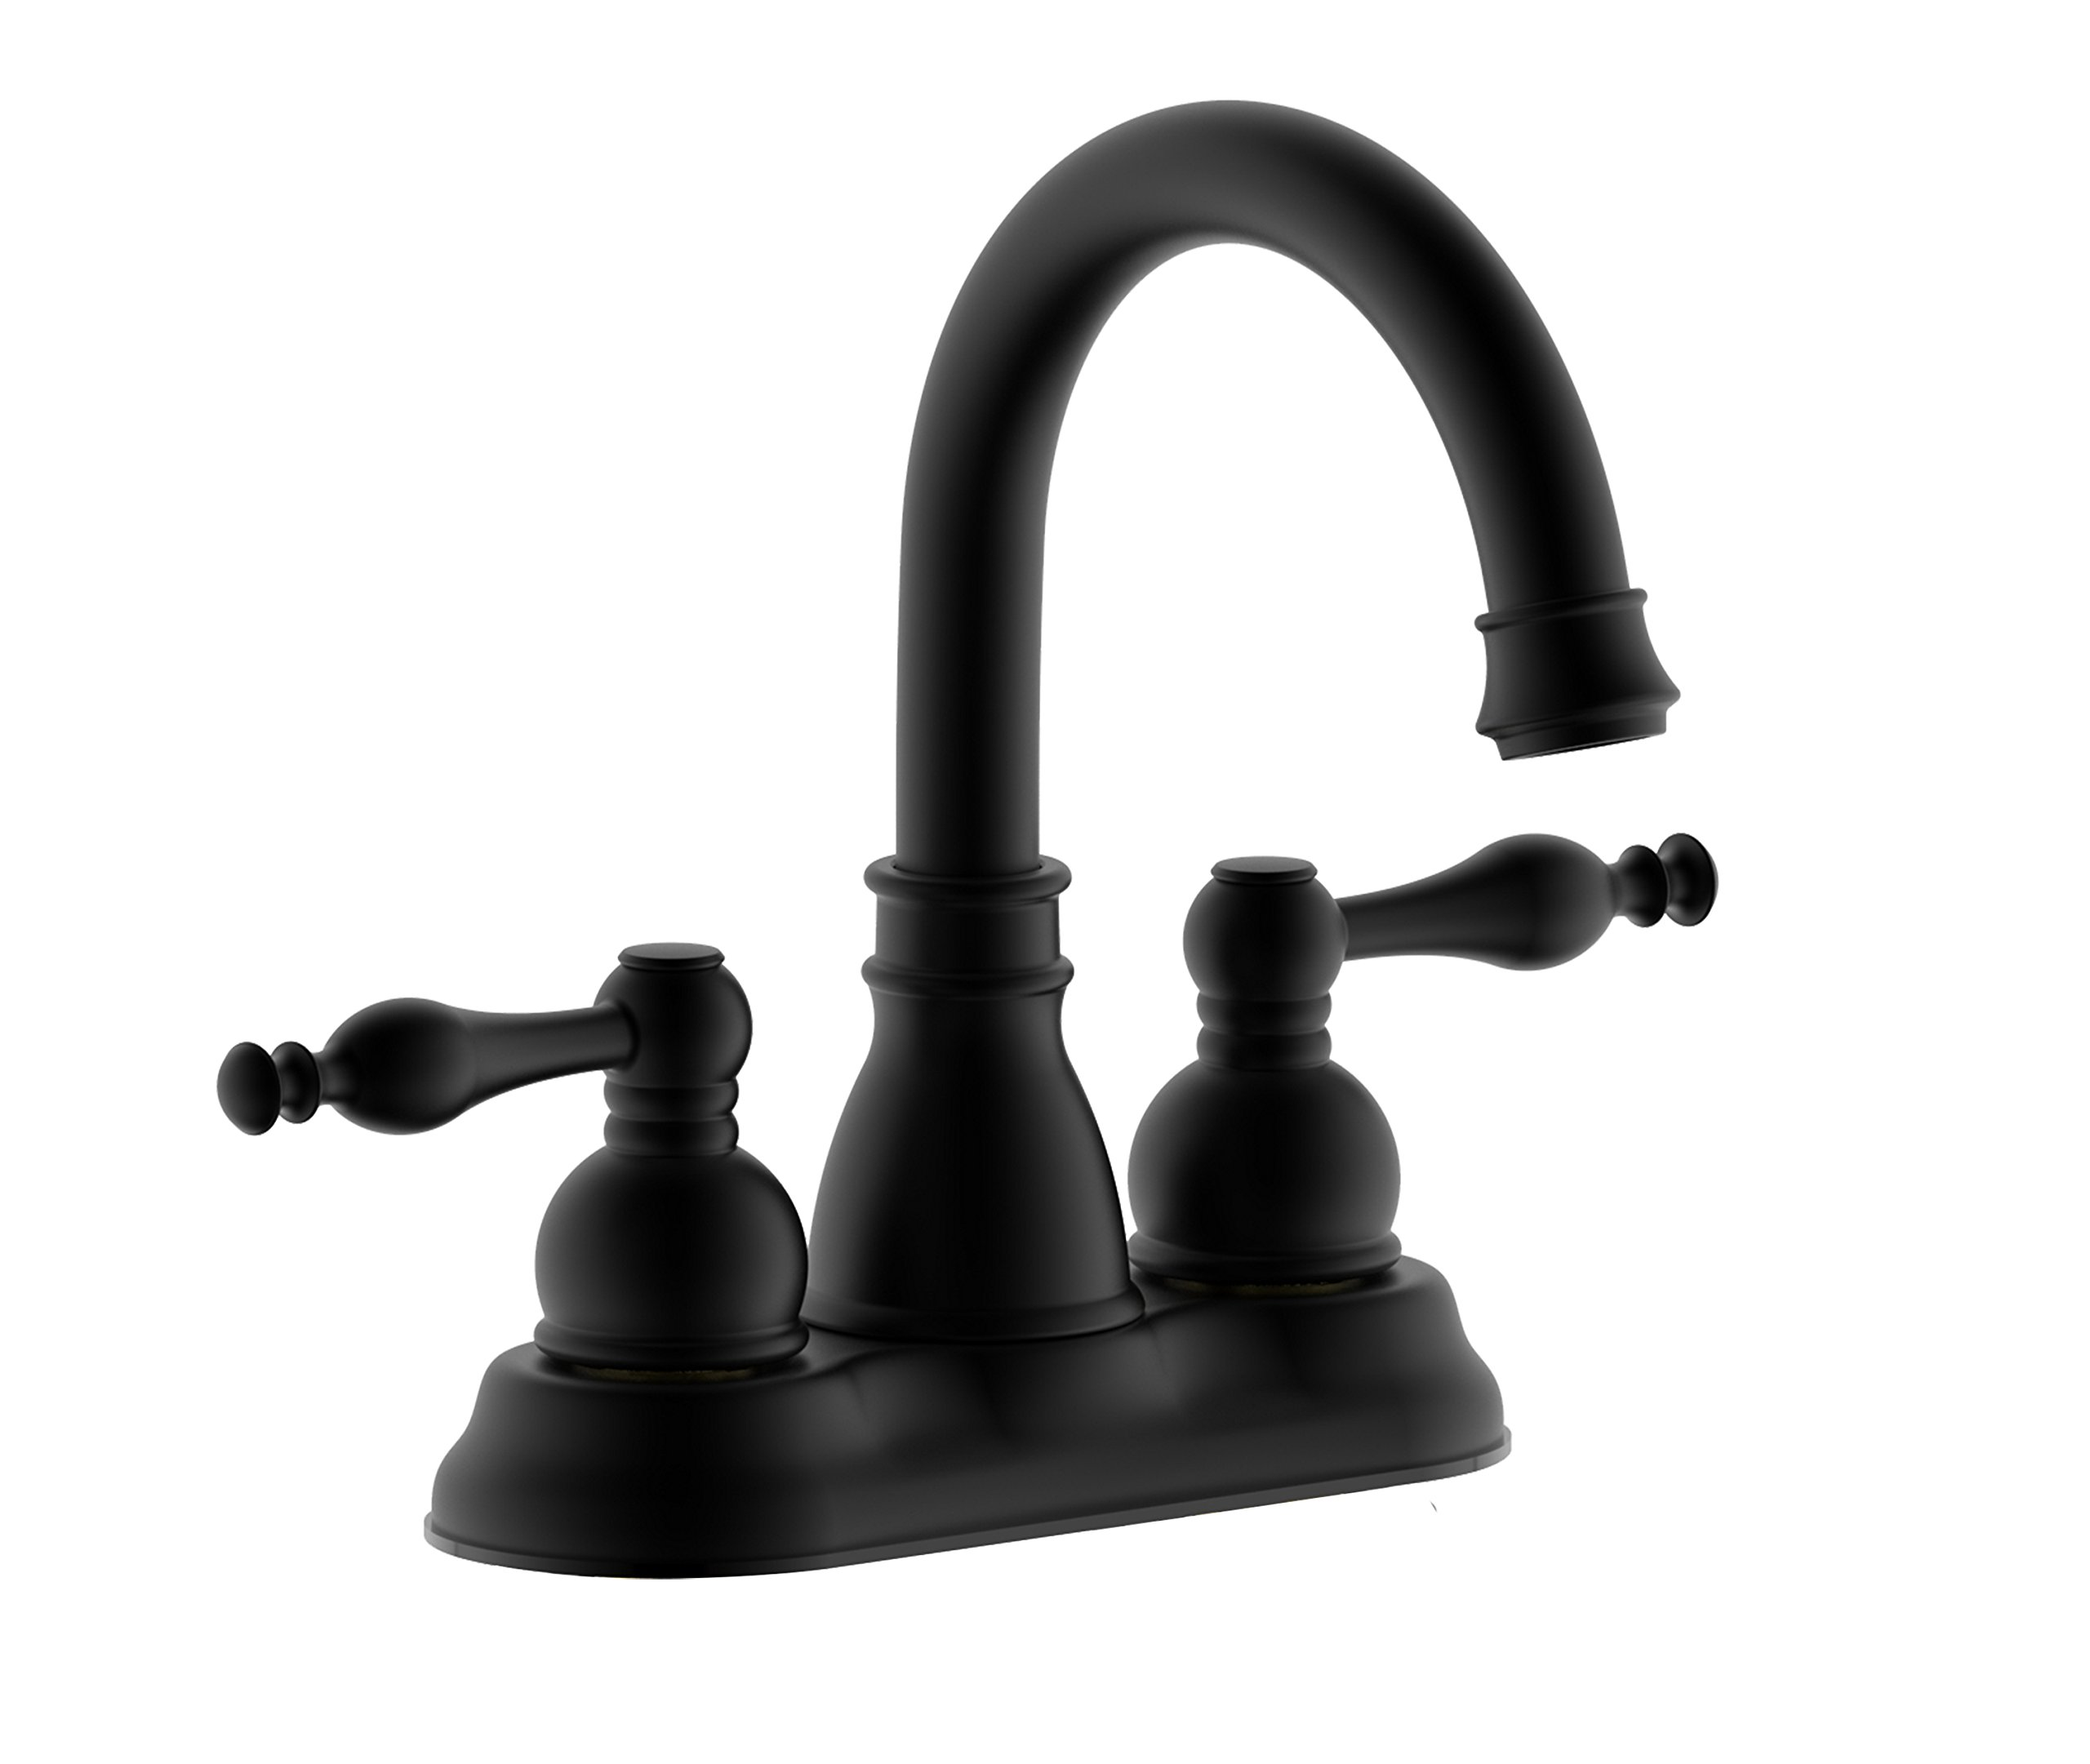 Derengge F-450-JM MT Matte Black Two-Handle Lavatory Bathroom Sink Faucet with Pop up Drain Trim Assembly,Meet cUPC NSF AB1953 Lead Free by Derengge